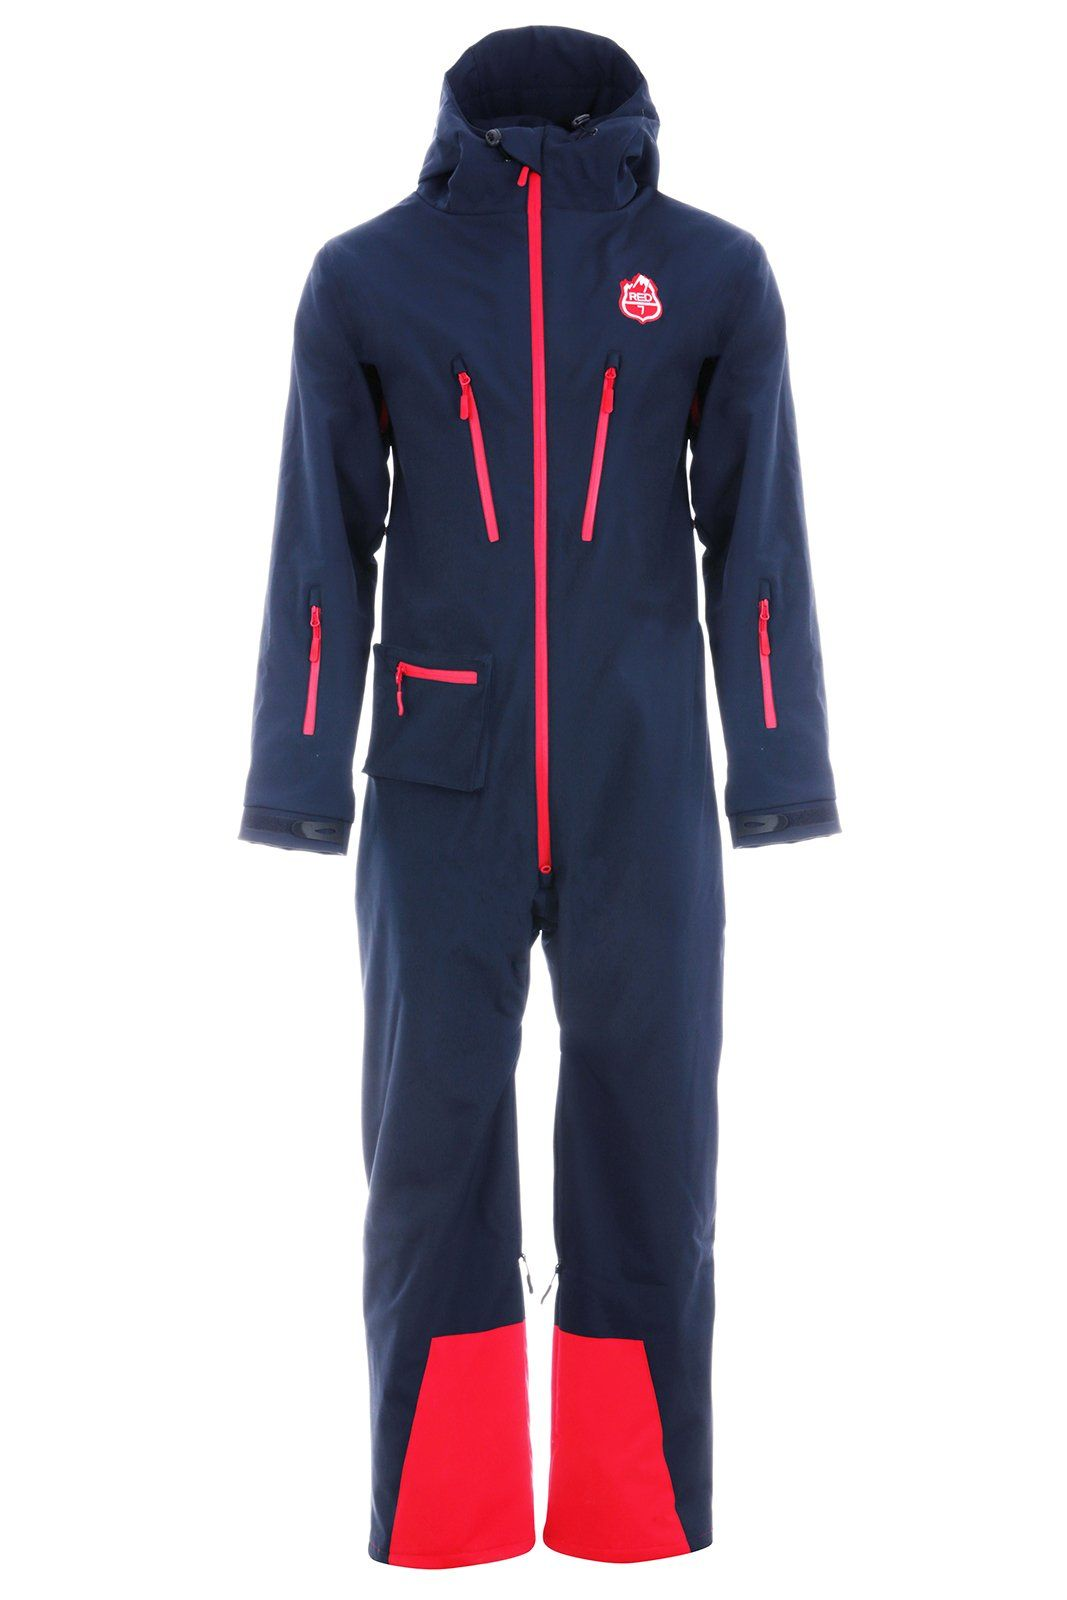 Red7 cg1 all-in-one suit in 2019  472f318e4